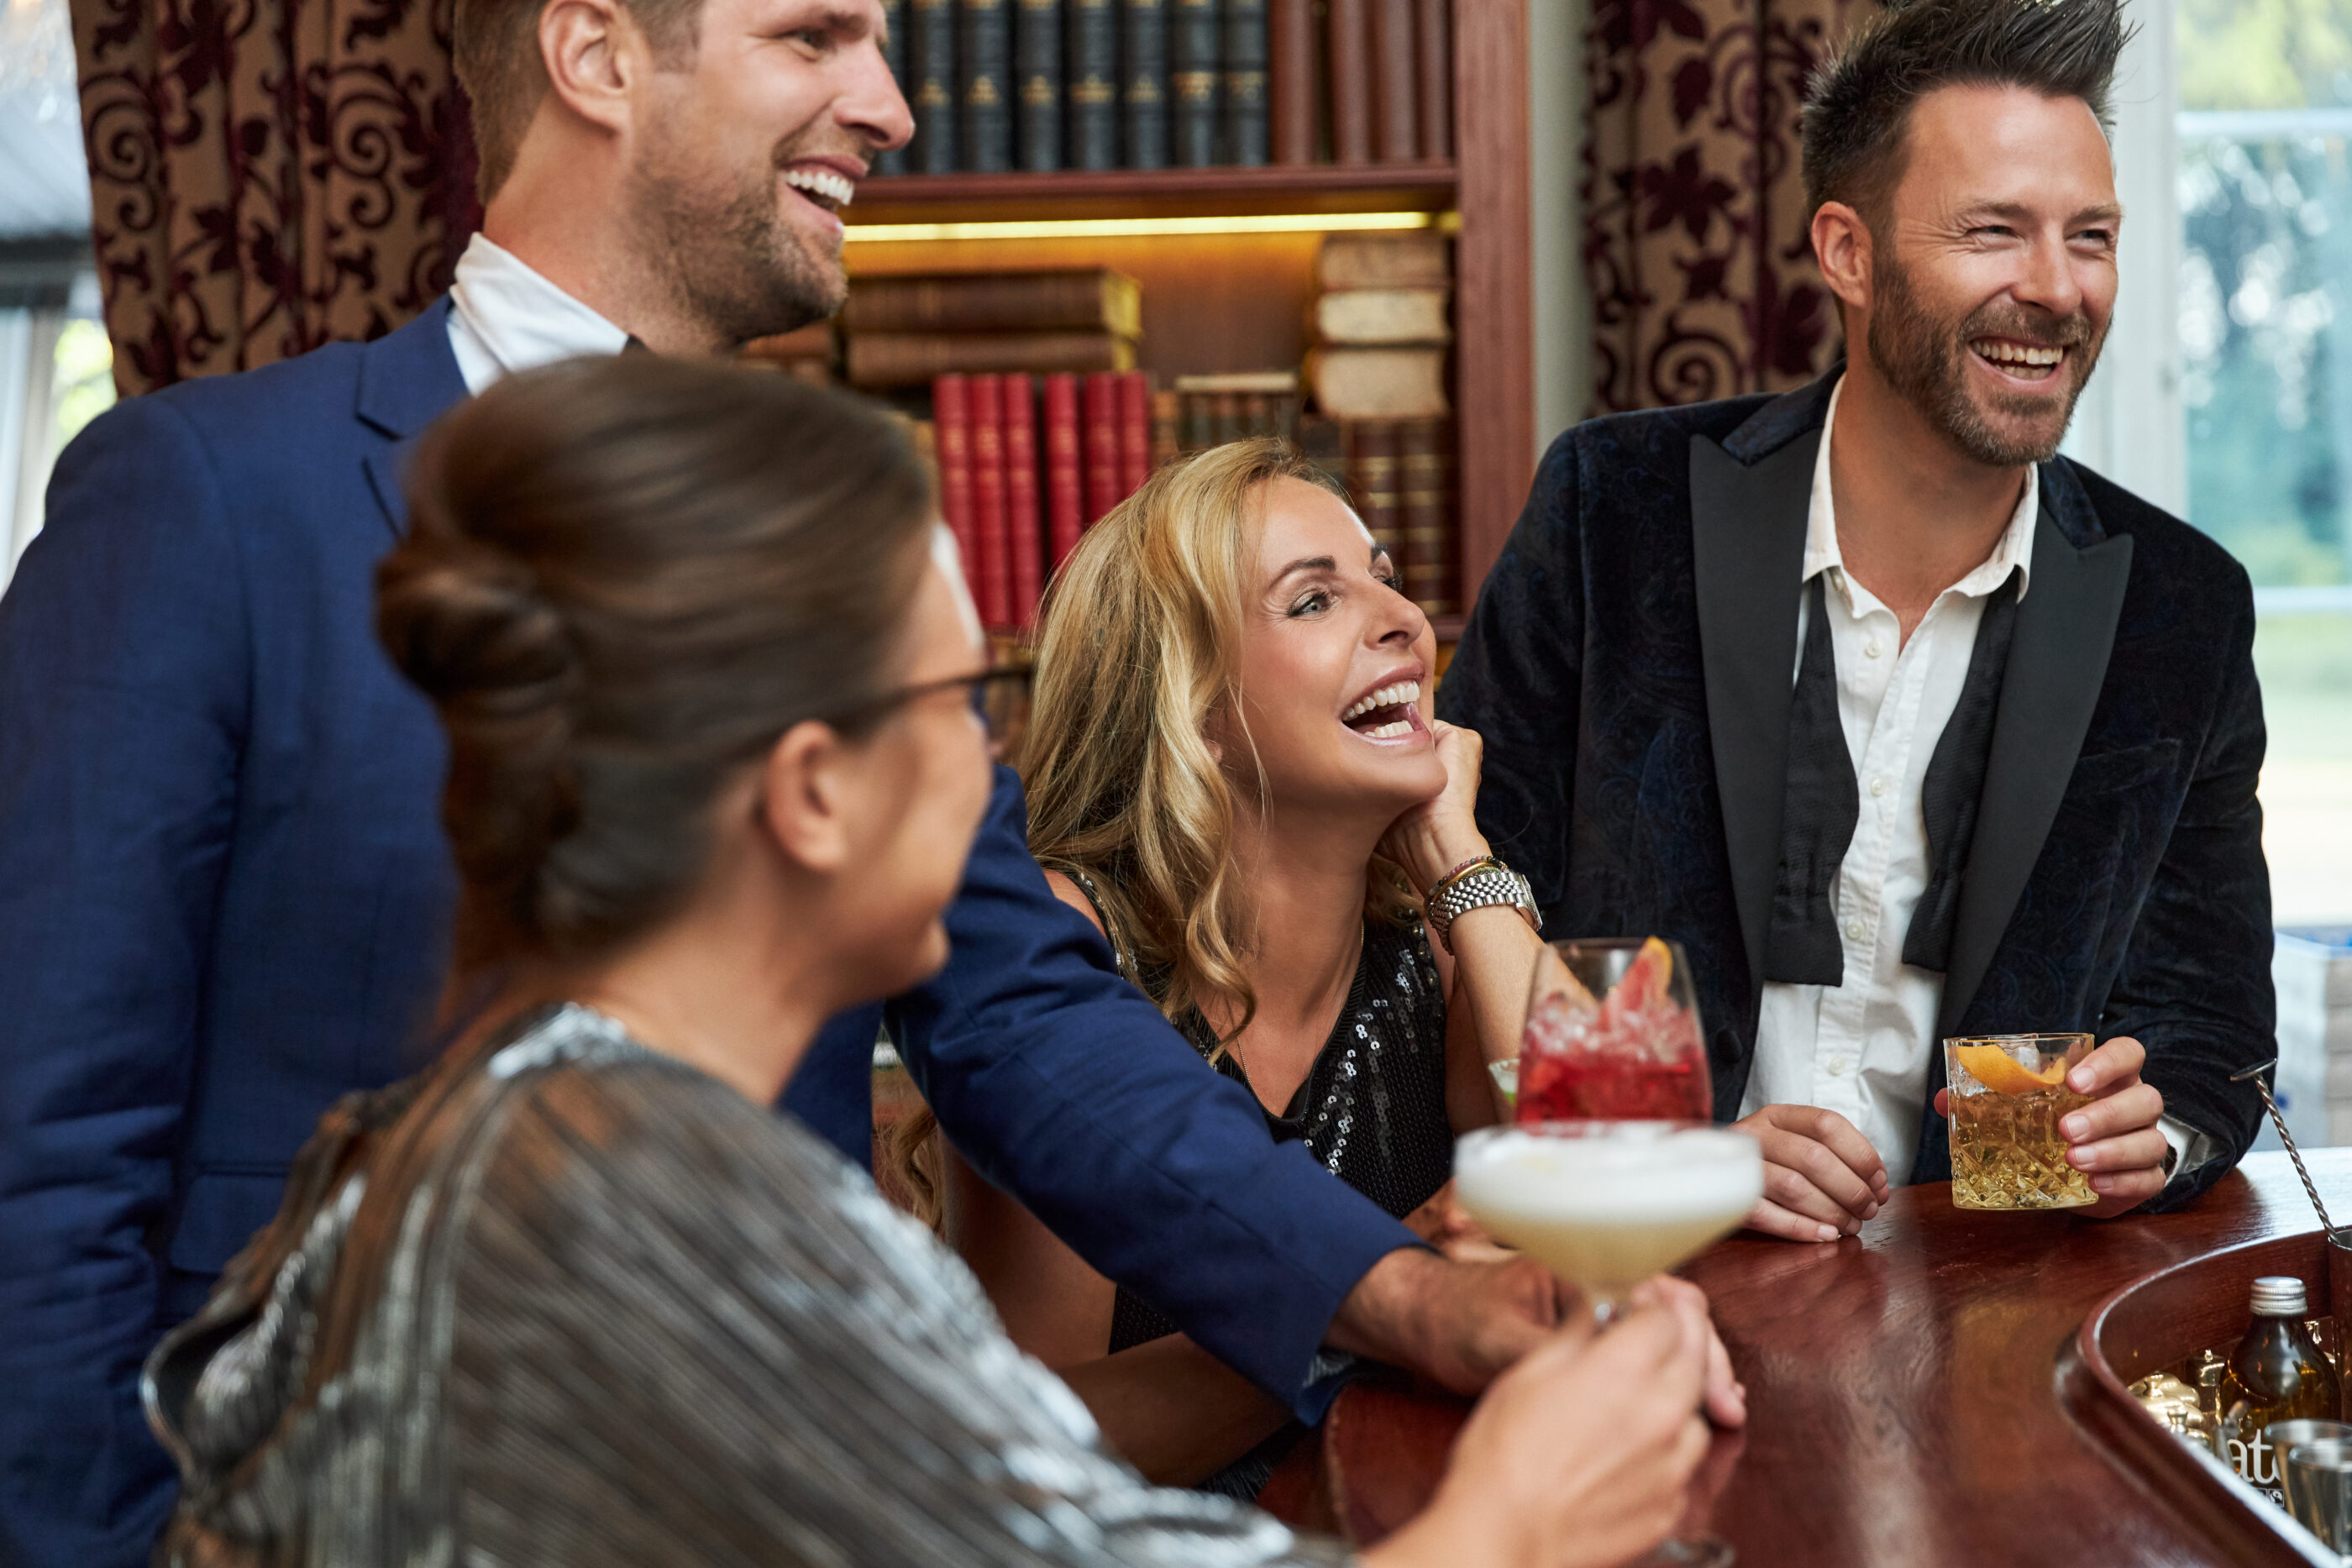 People laughing at the bar with drinks